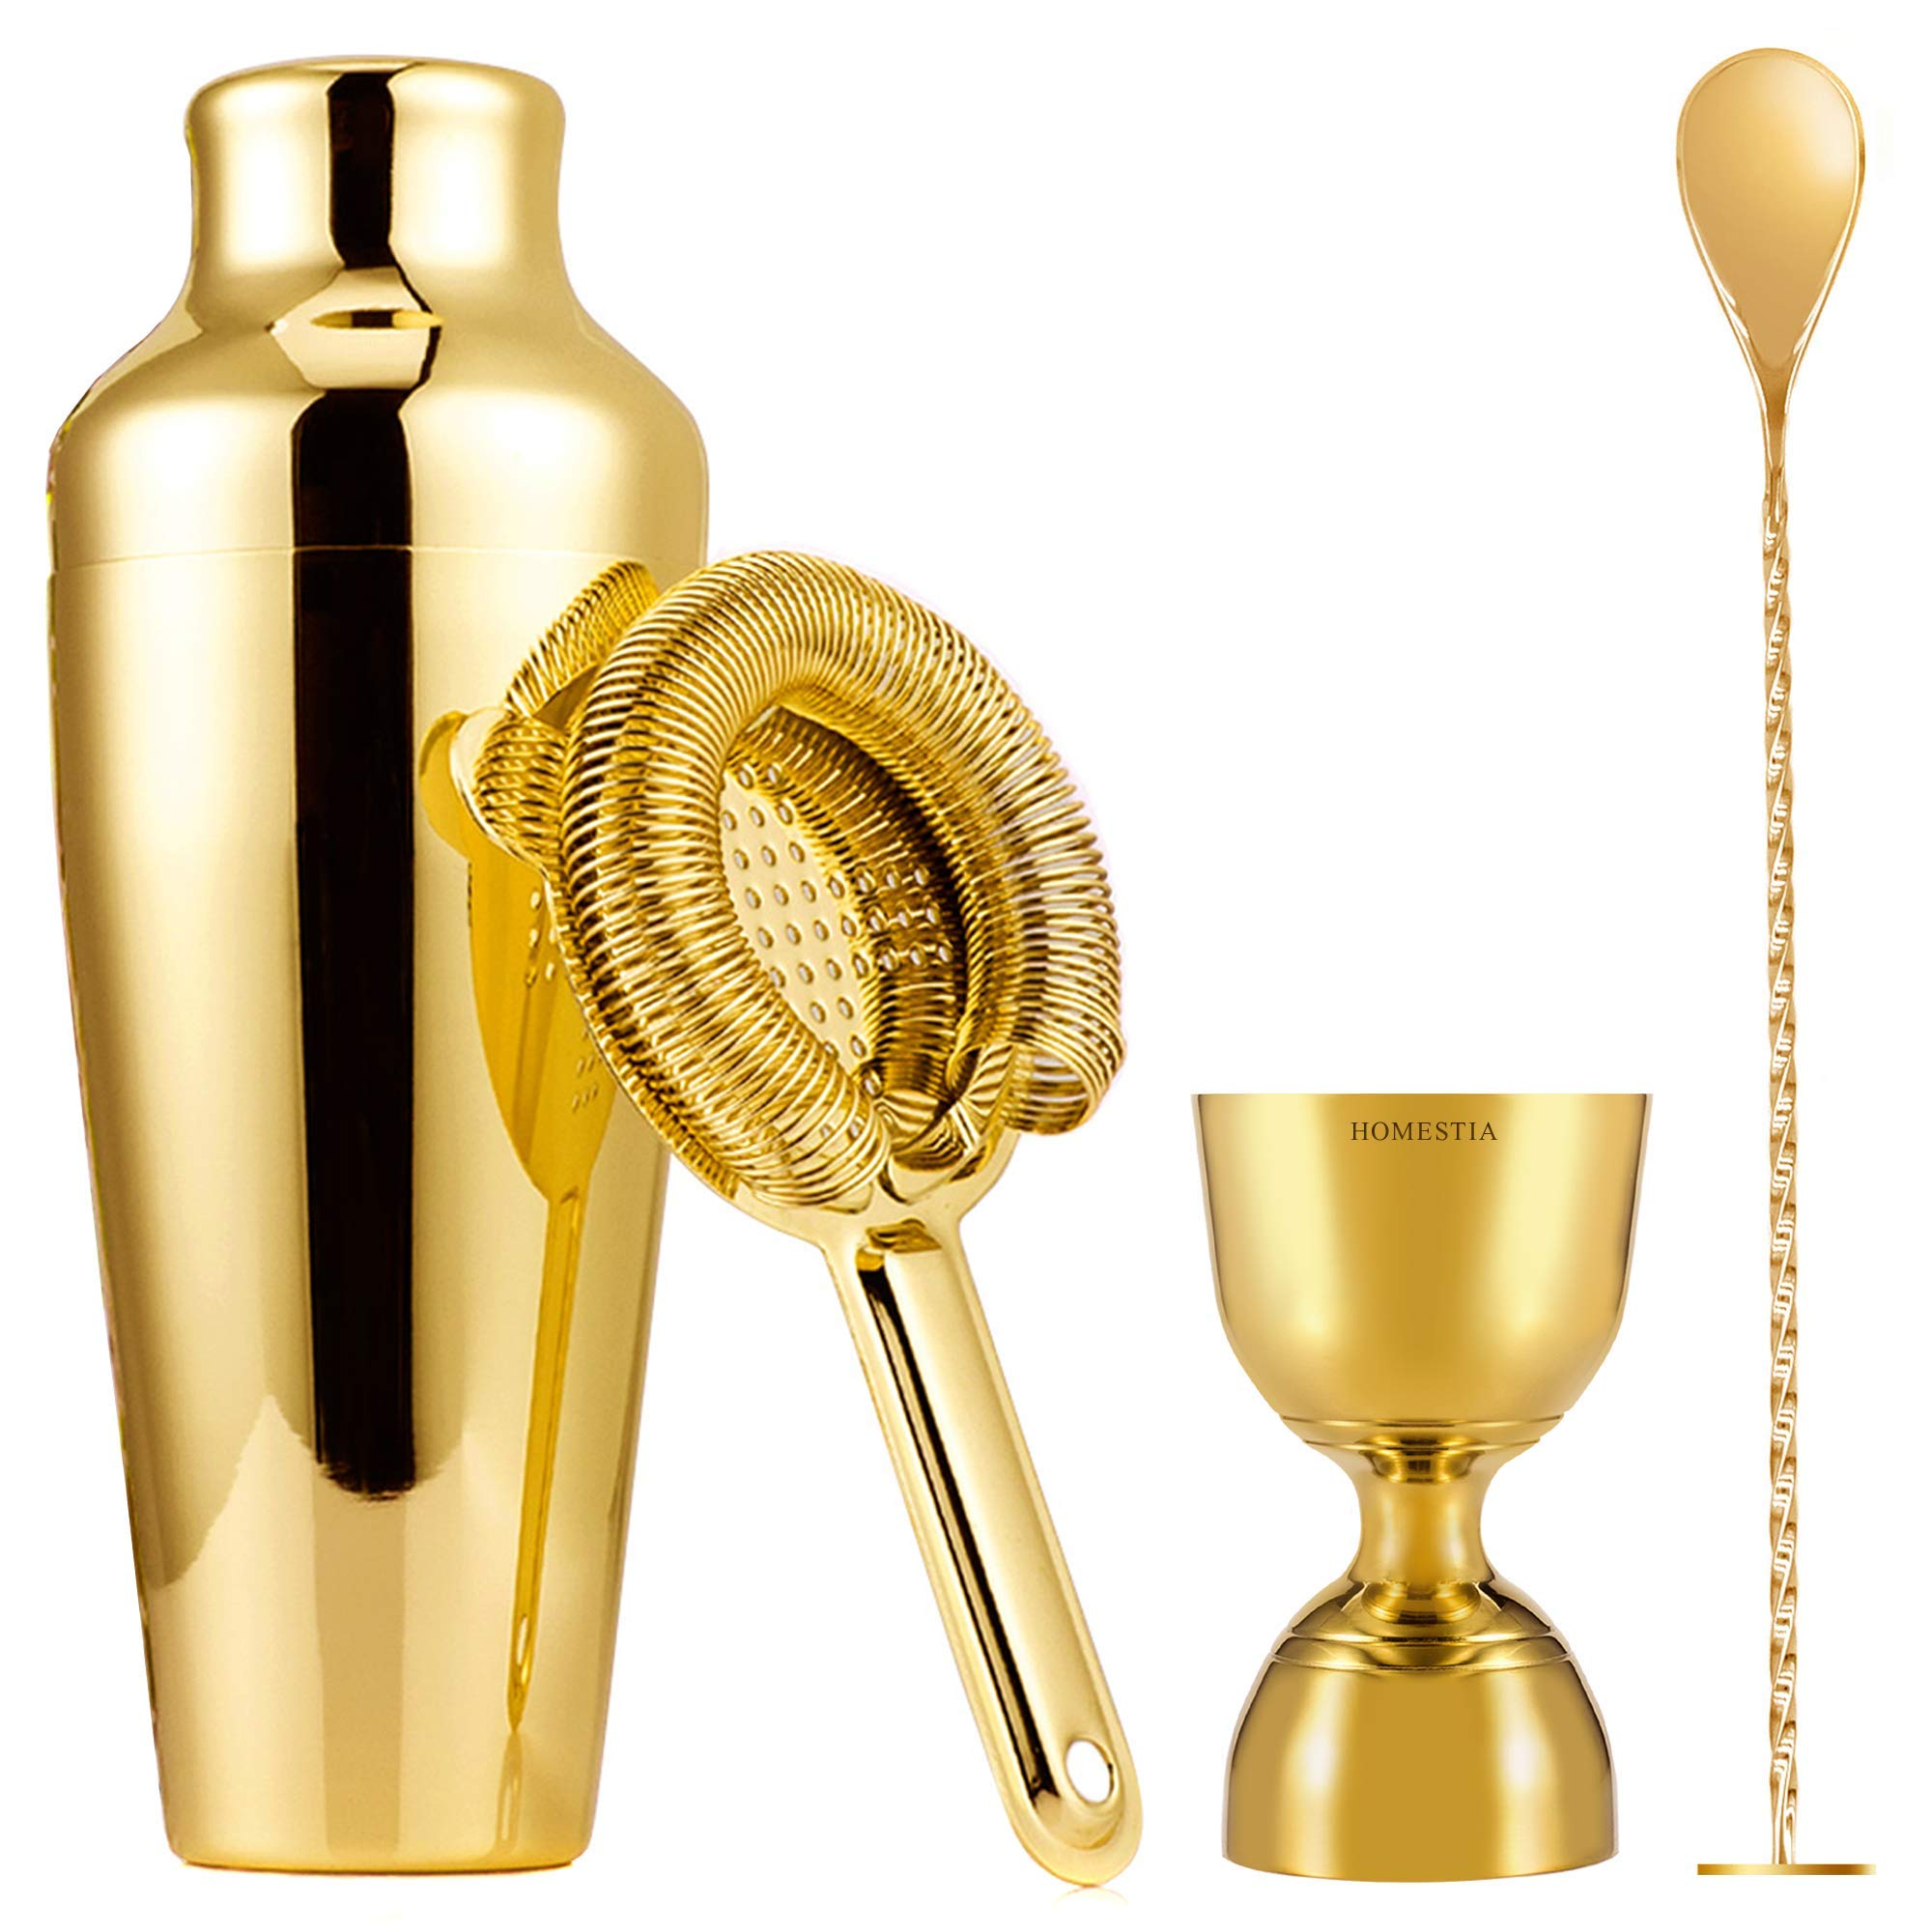 Bartender Kit Cocktail Shaker Bar Set By Homestia 4-Piece: 20oz French Shaker, Hawthorne Cocktail Strainer, Double Jigger, Cocktail Spoon with Muddler Top(Gold Plated)